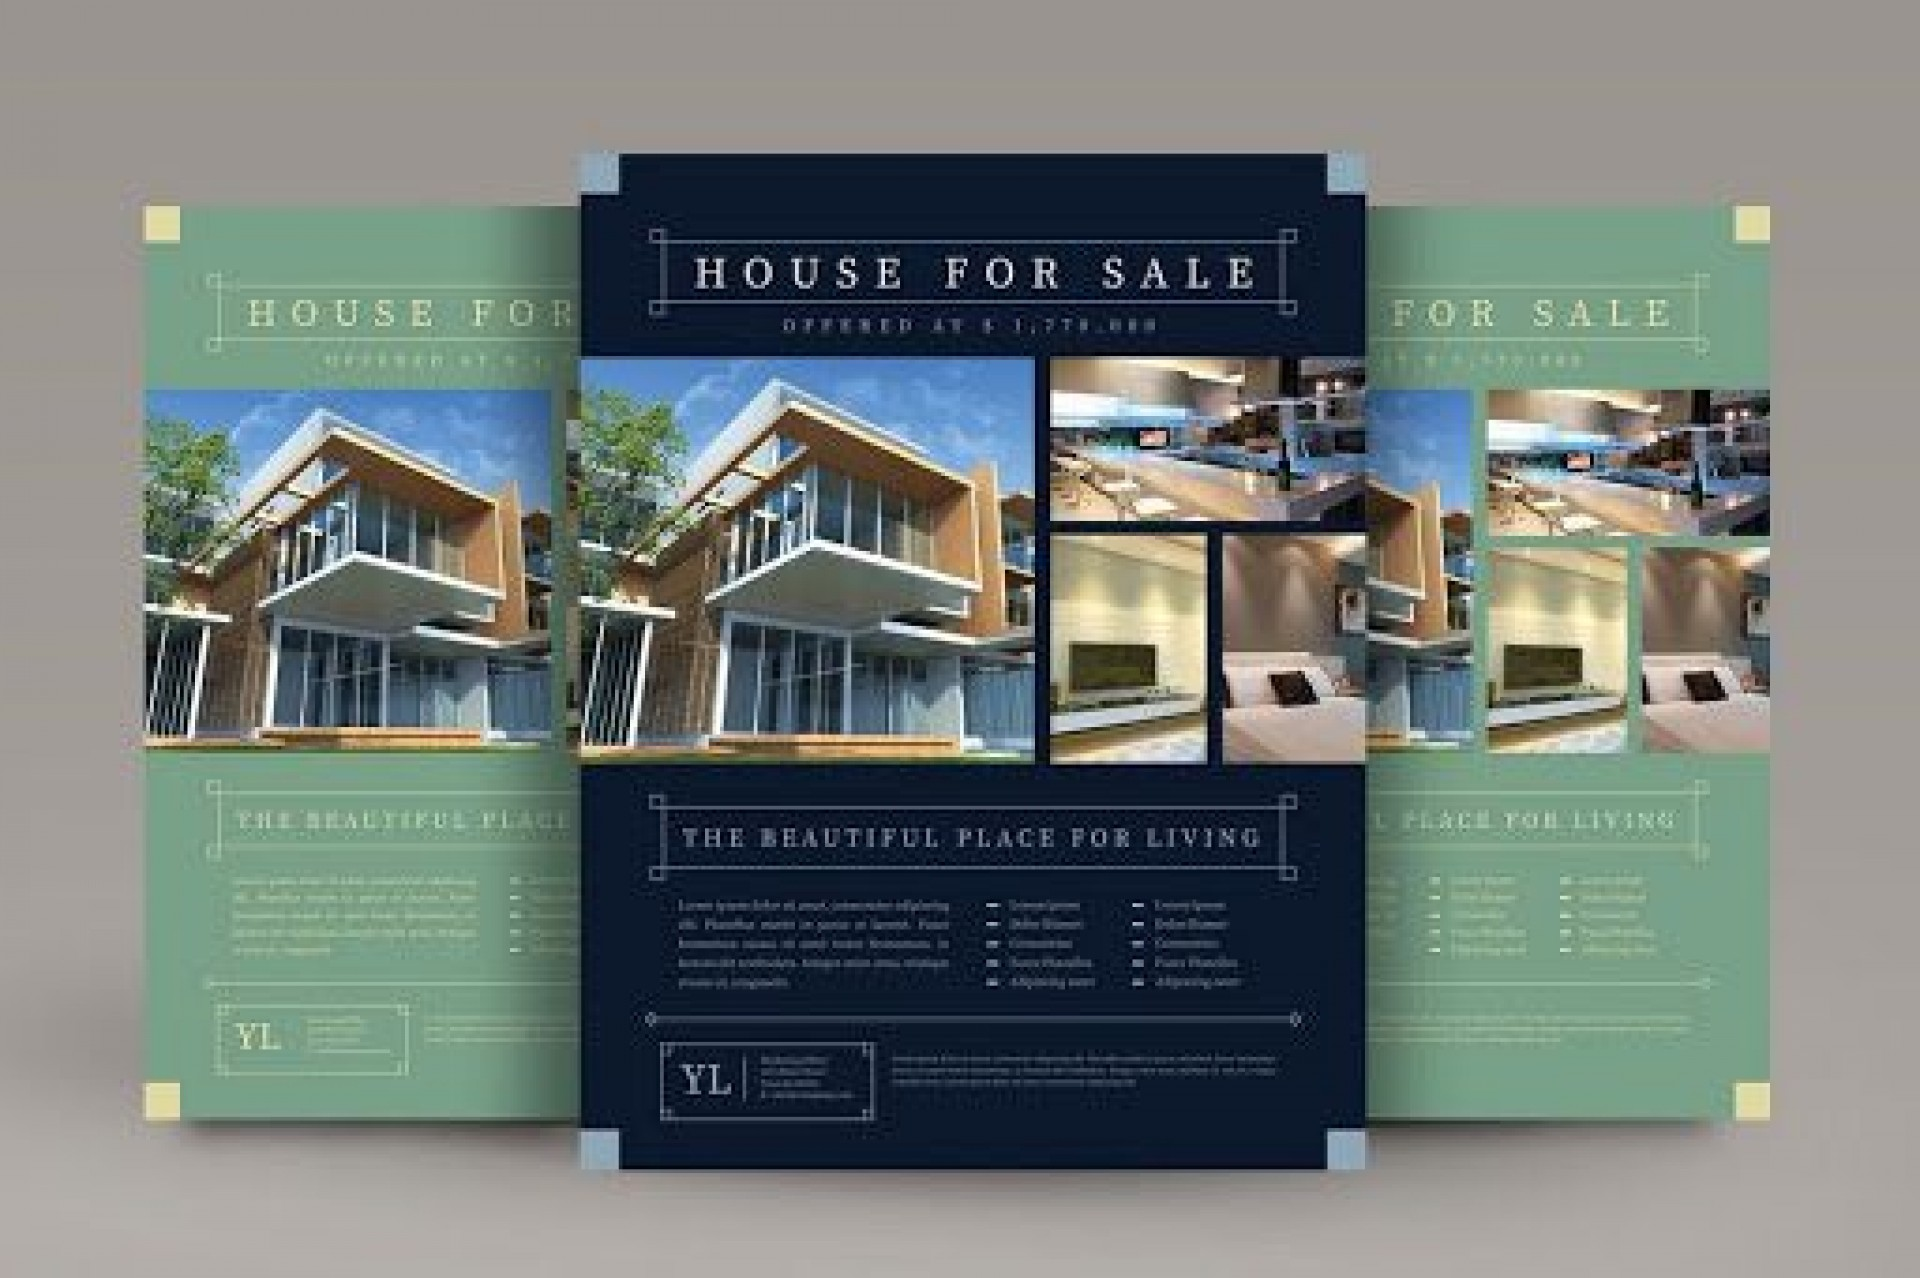 006 Unusual Real Estate Flyer Template Highest Clarity  Publisher Word Free1920